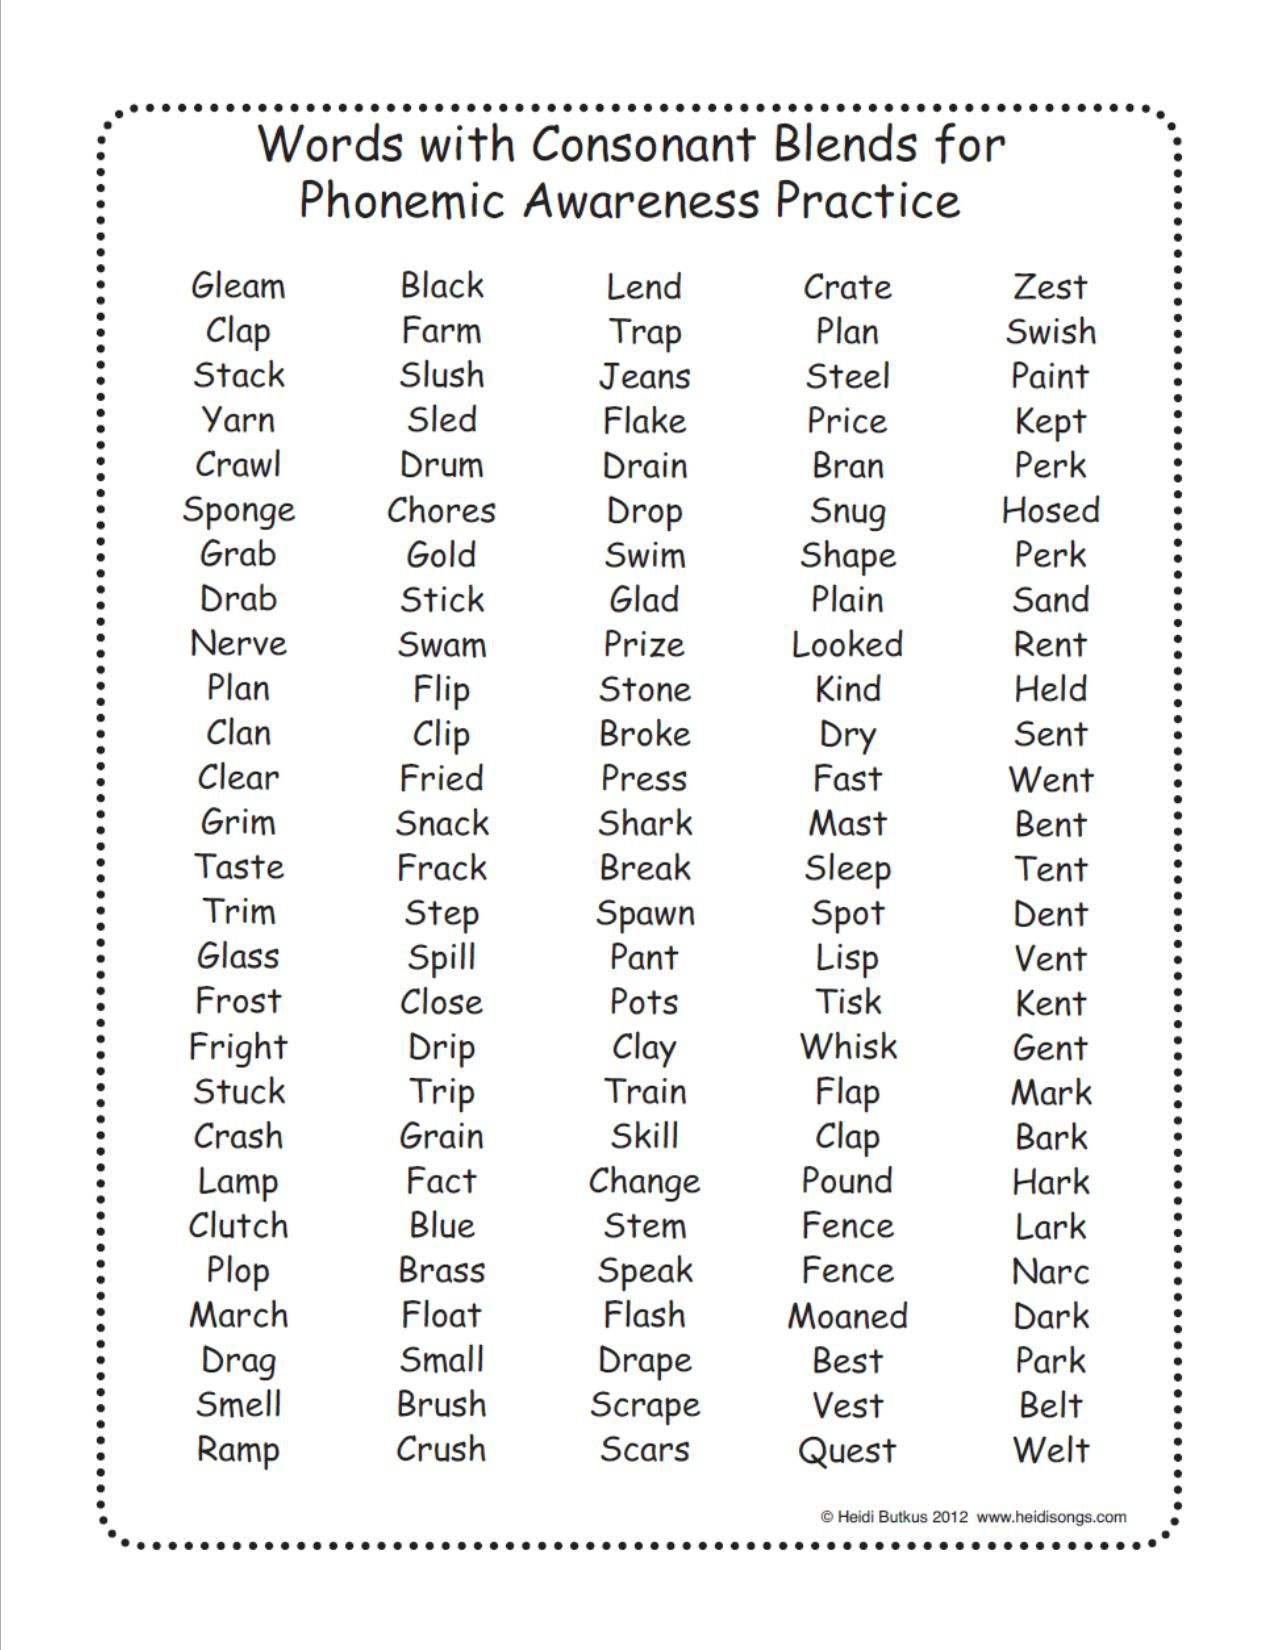 Dibels Practice Words